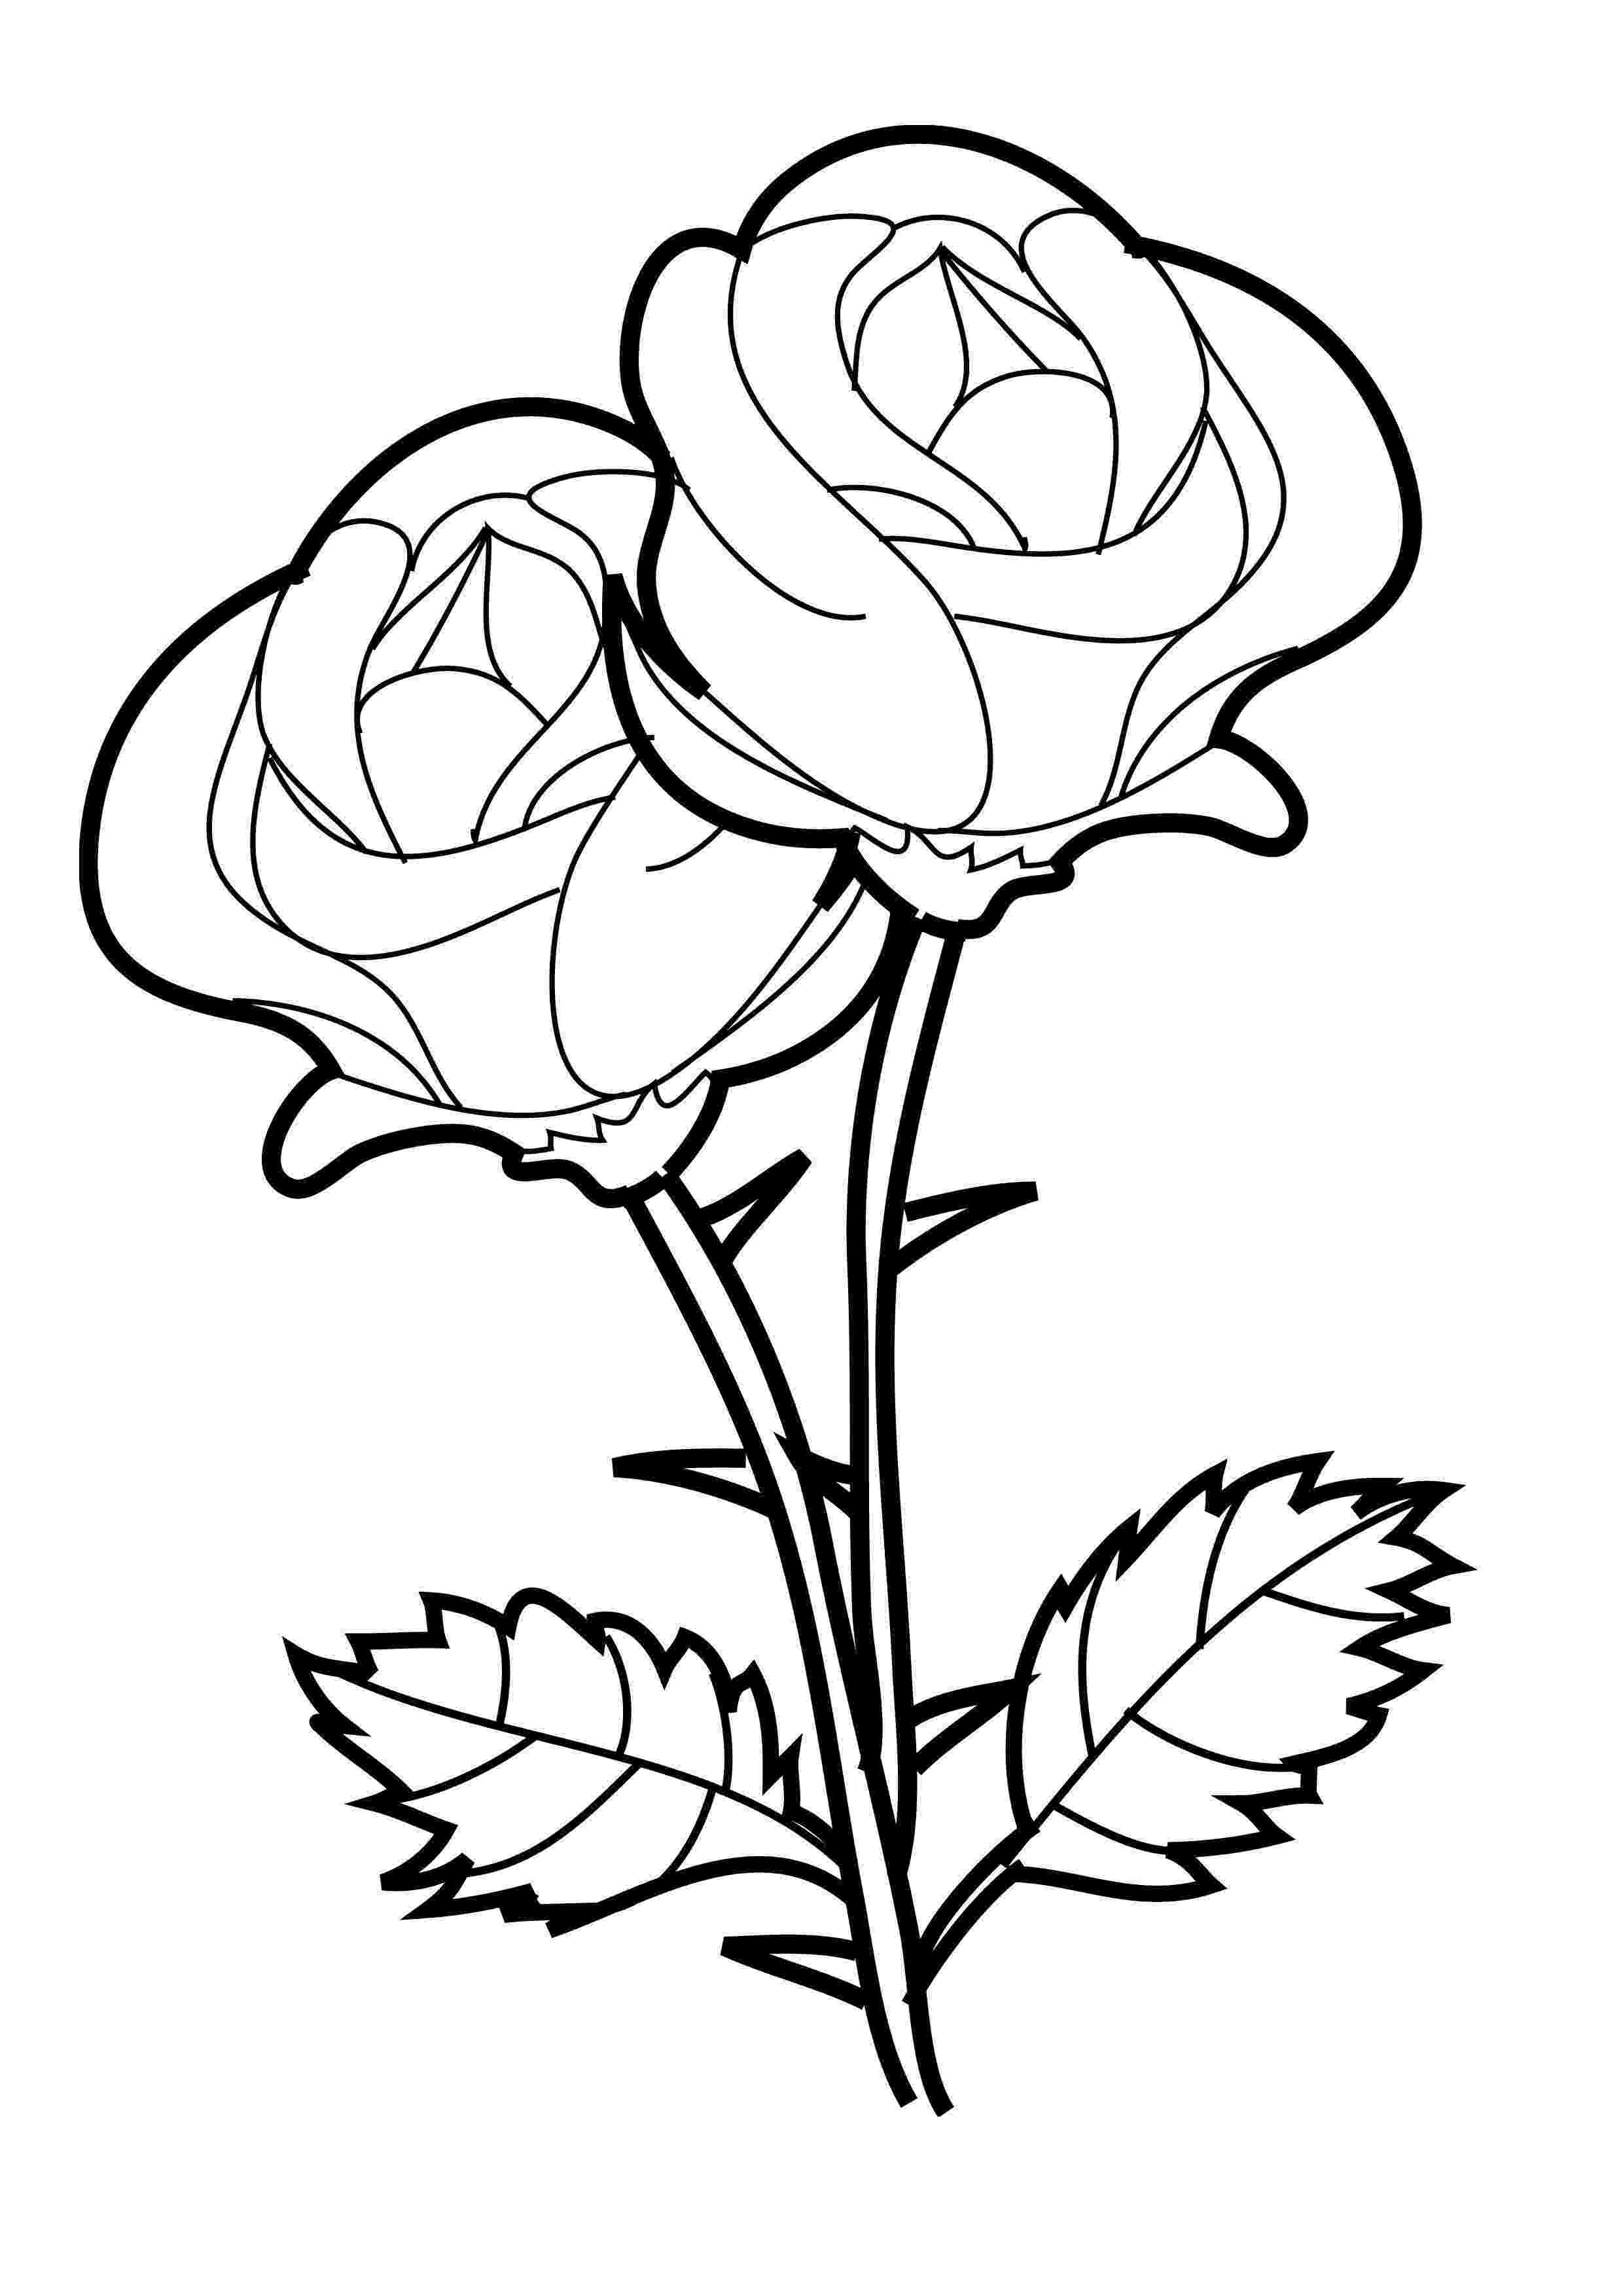 colouring pictures of roses printable rose coloring pages for kids cool2bkids roses of pictures colouring